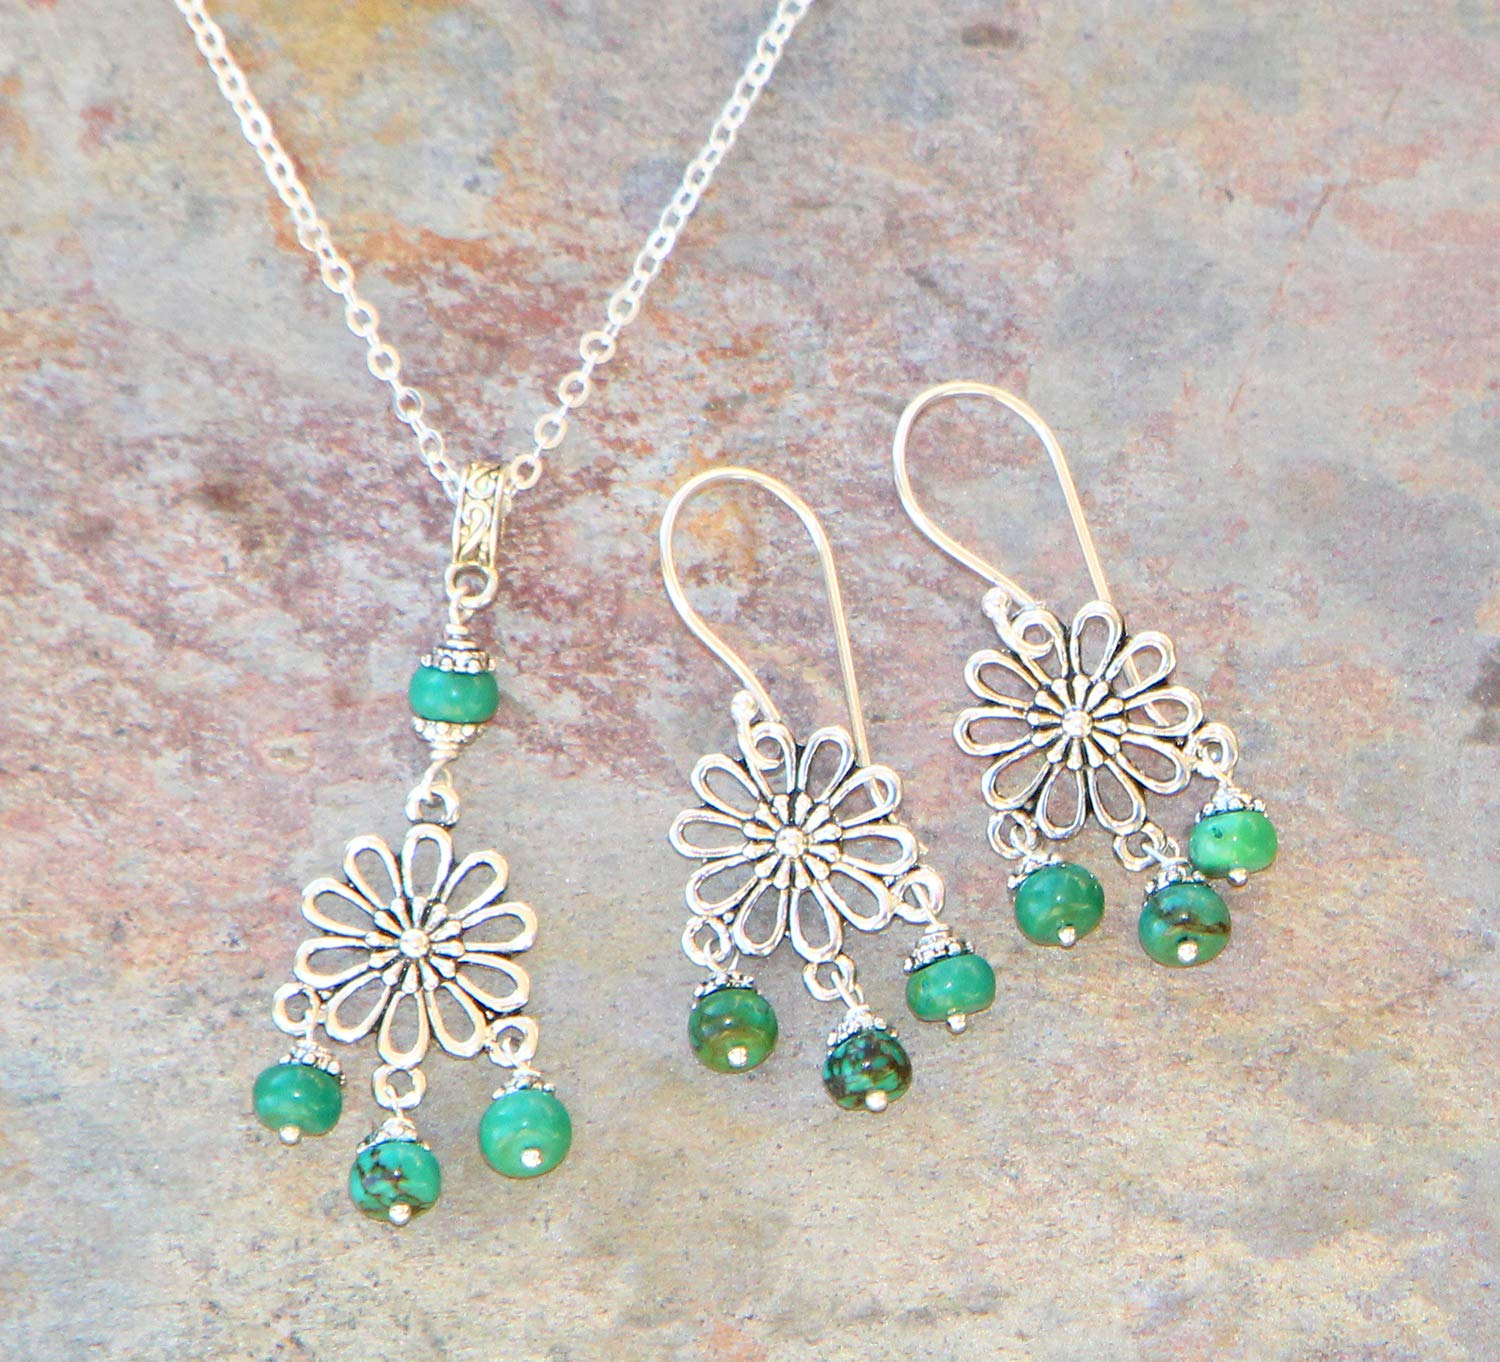 Green Turquoise Jewelry Shipping Sale special price included Flower Set S